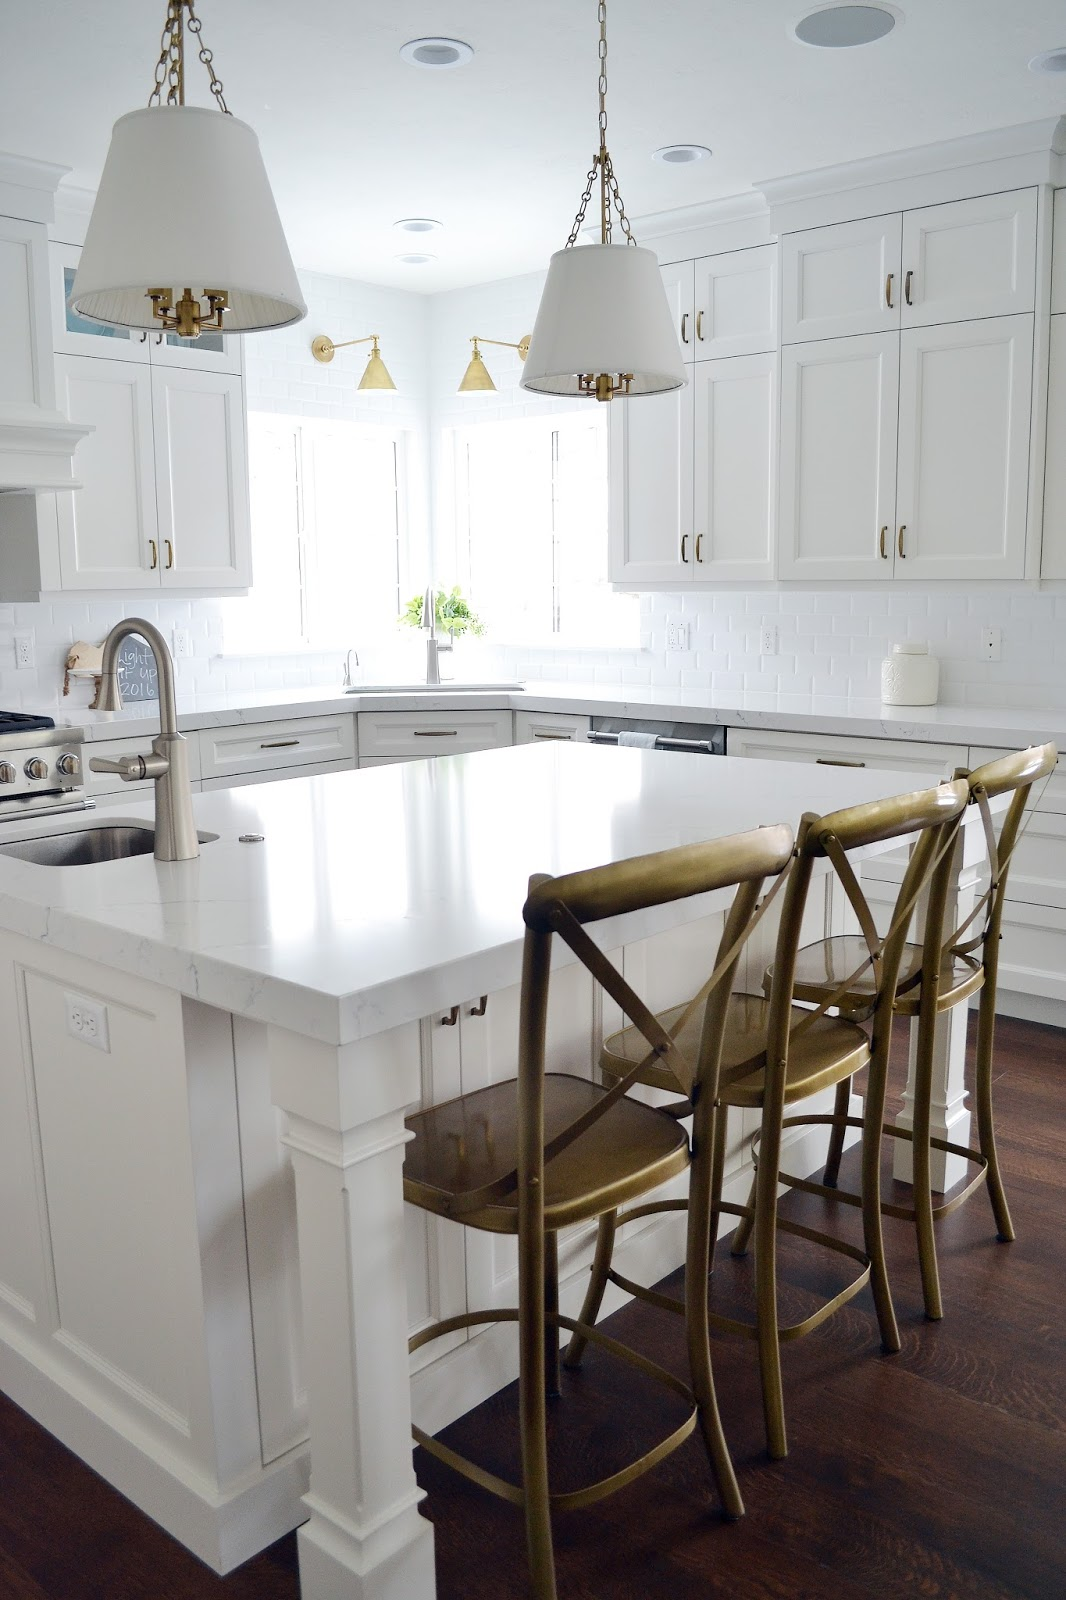 white pictures unlock kitchen hgtv square imagination with for islands ideas from amazing stools chairs and grey strecthces